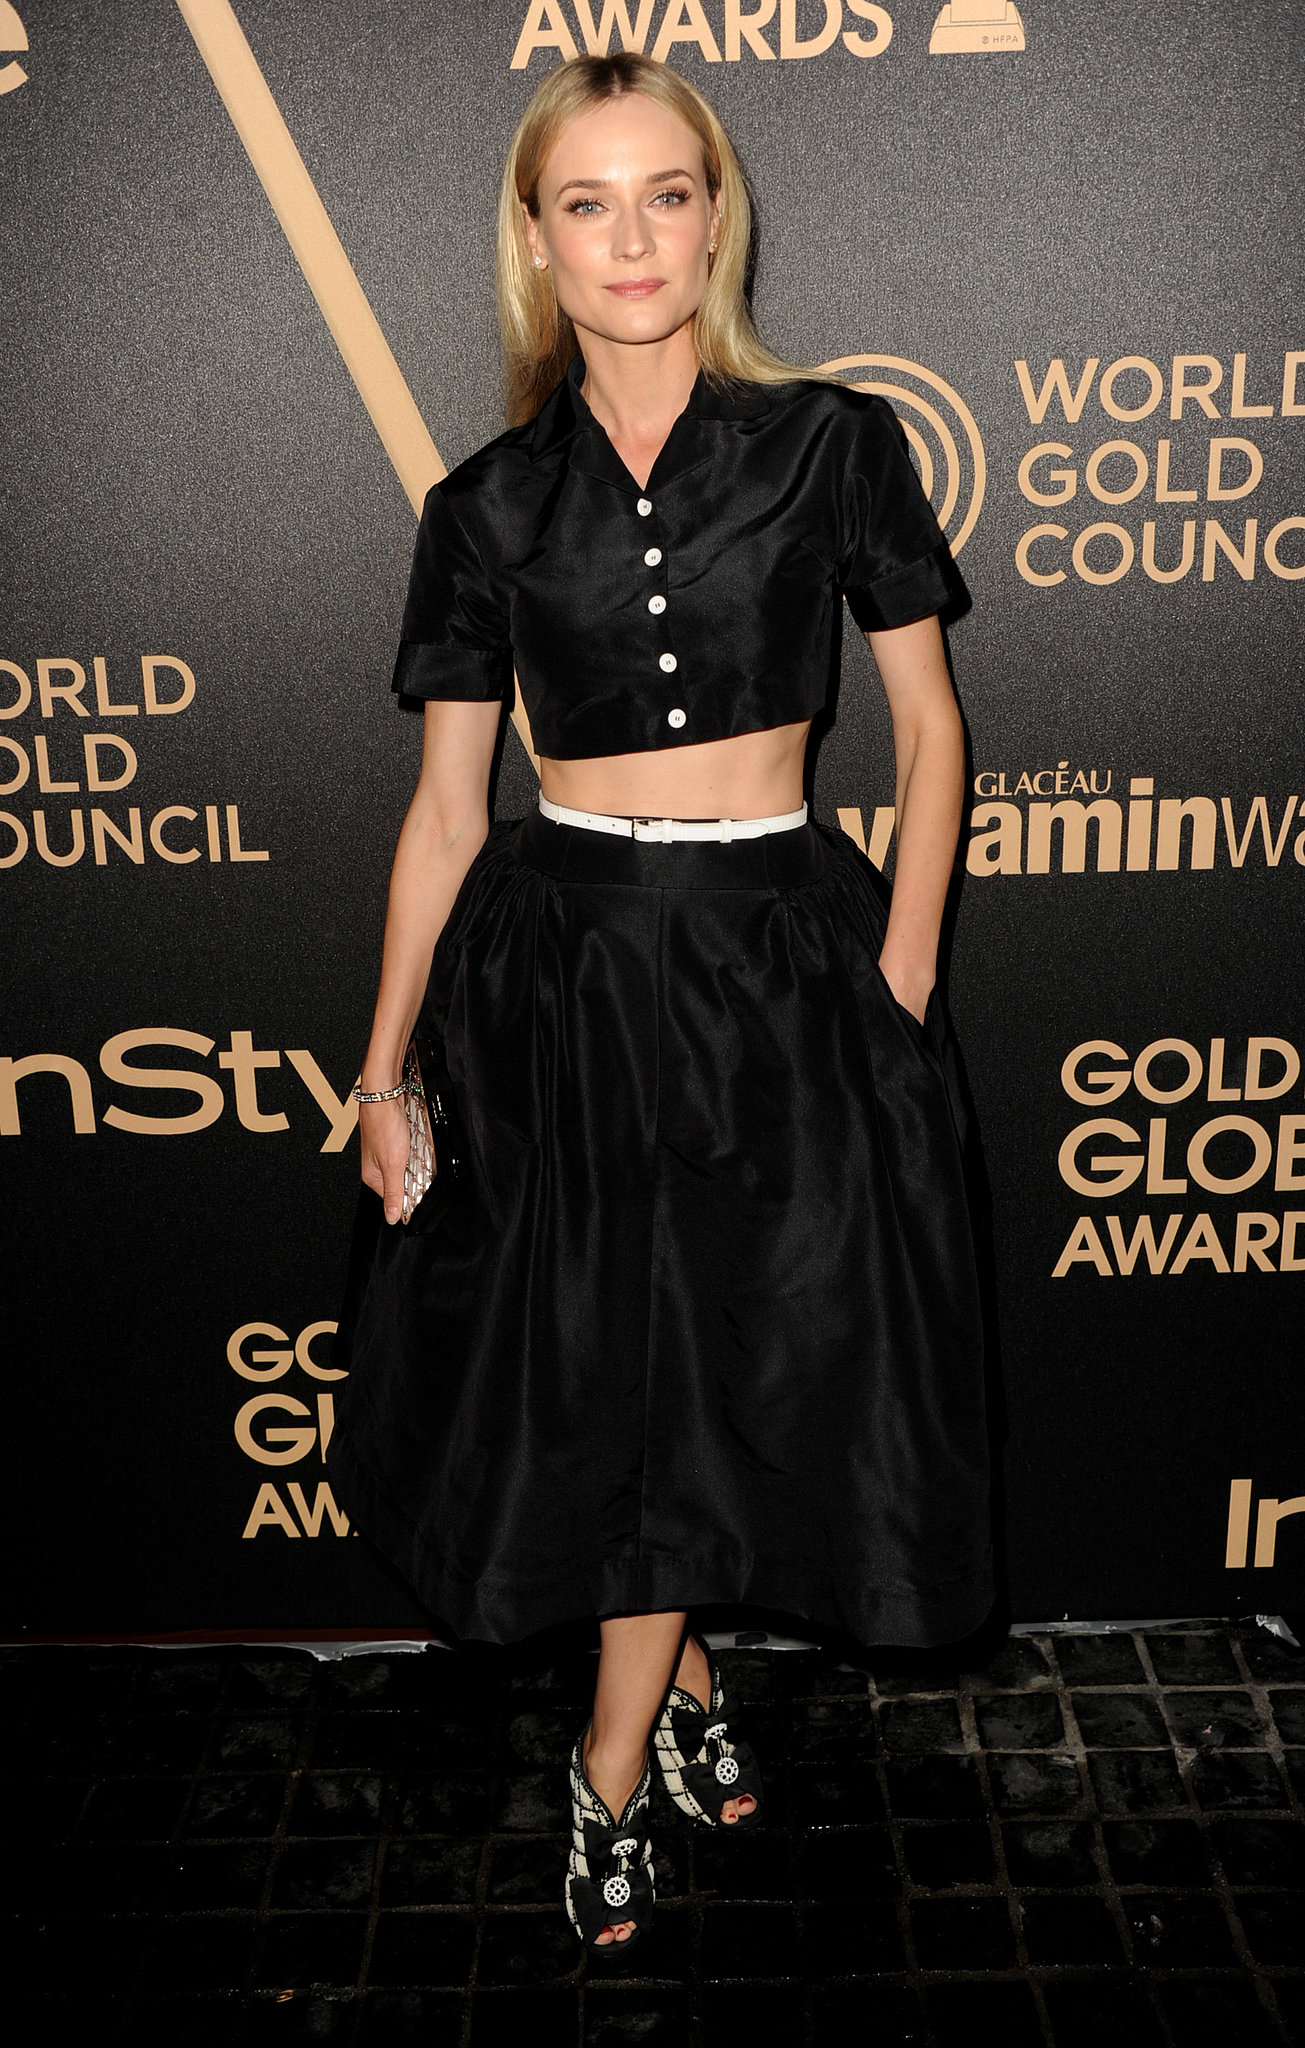 Diane owned the crop-top trend in a Rochas top and full skirt, cinched with a crisp while belt, paired with black and white Chanel booties during an award season celebration in November 2012.